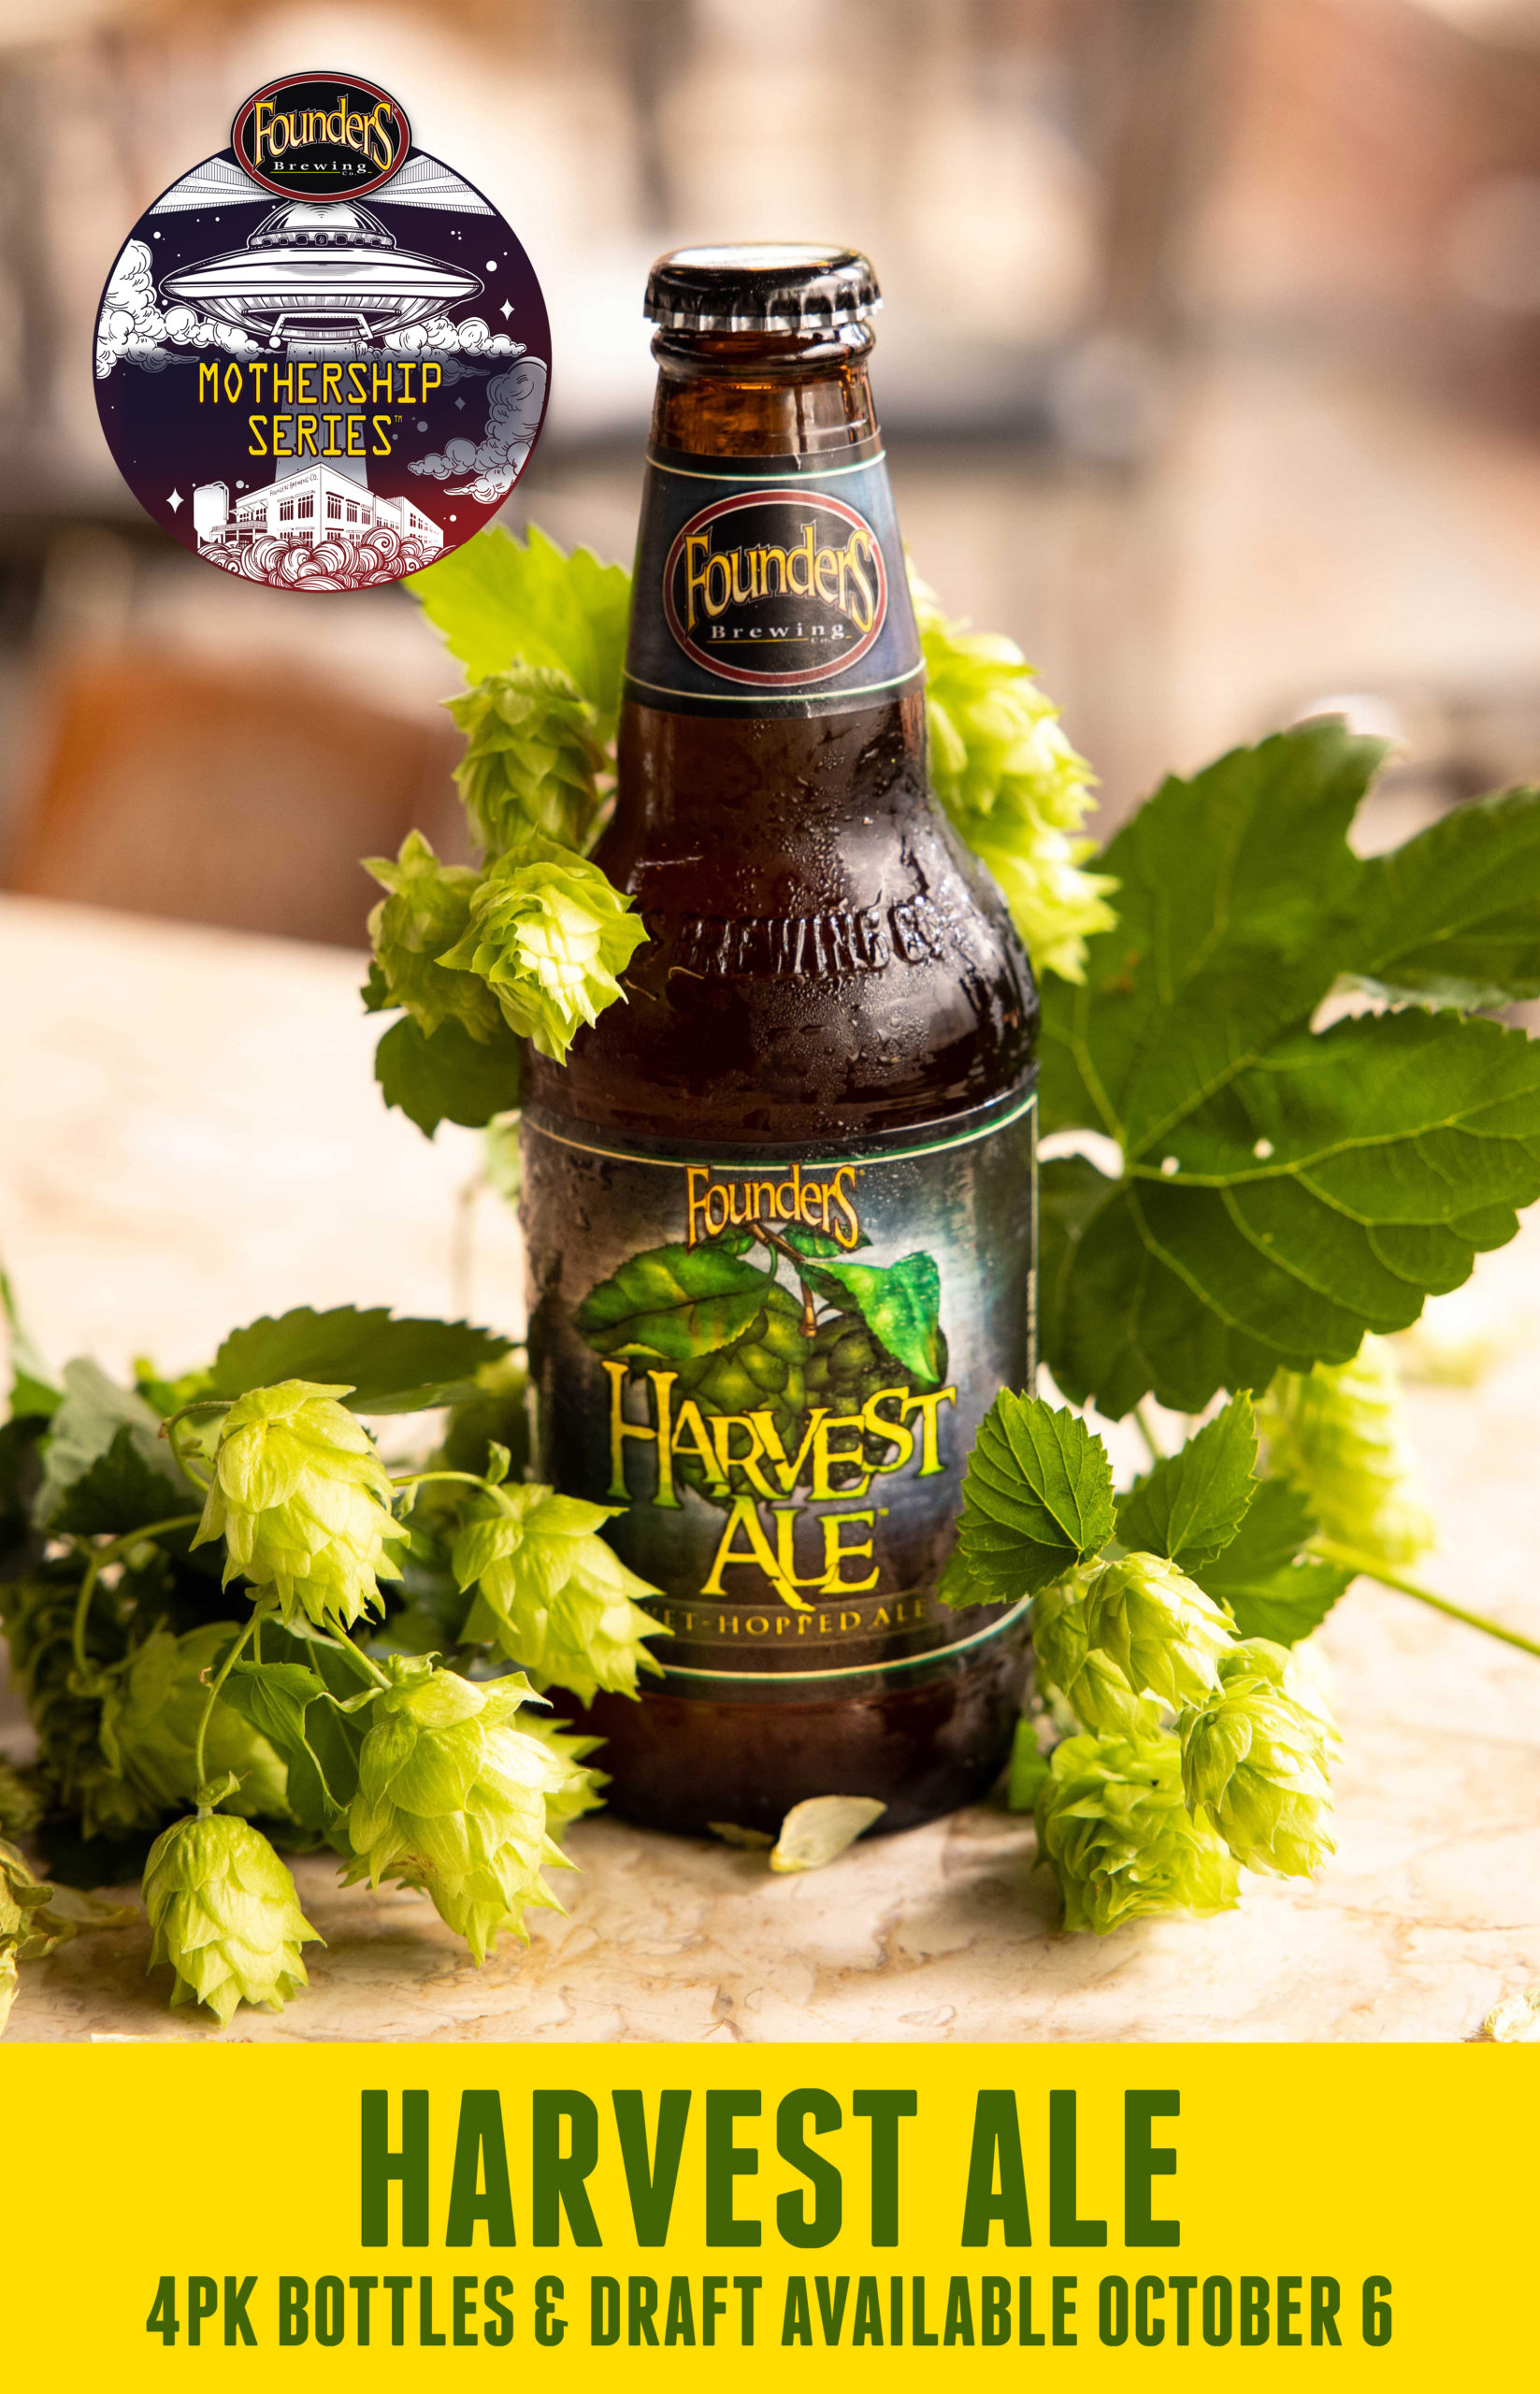 Harvest Ale available October 6